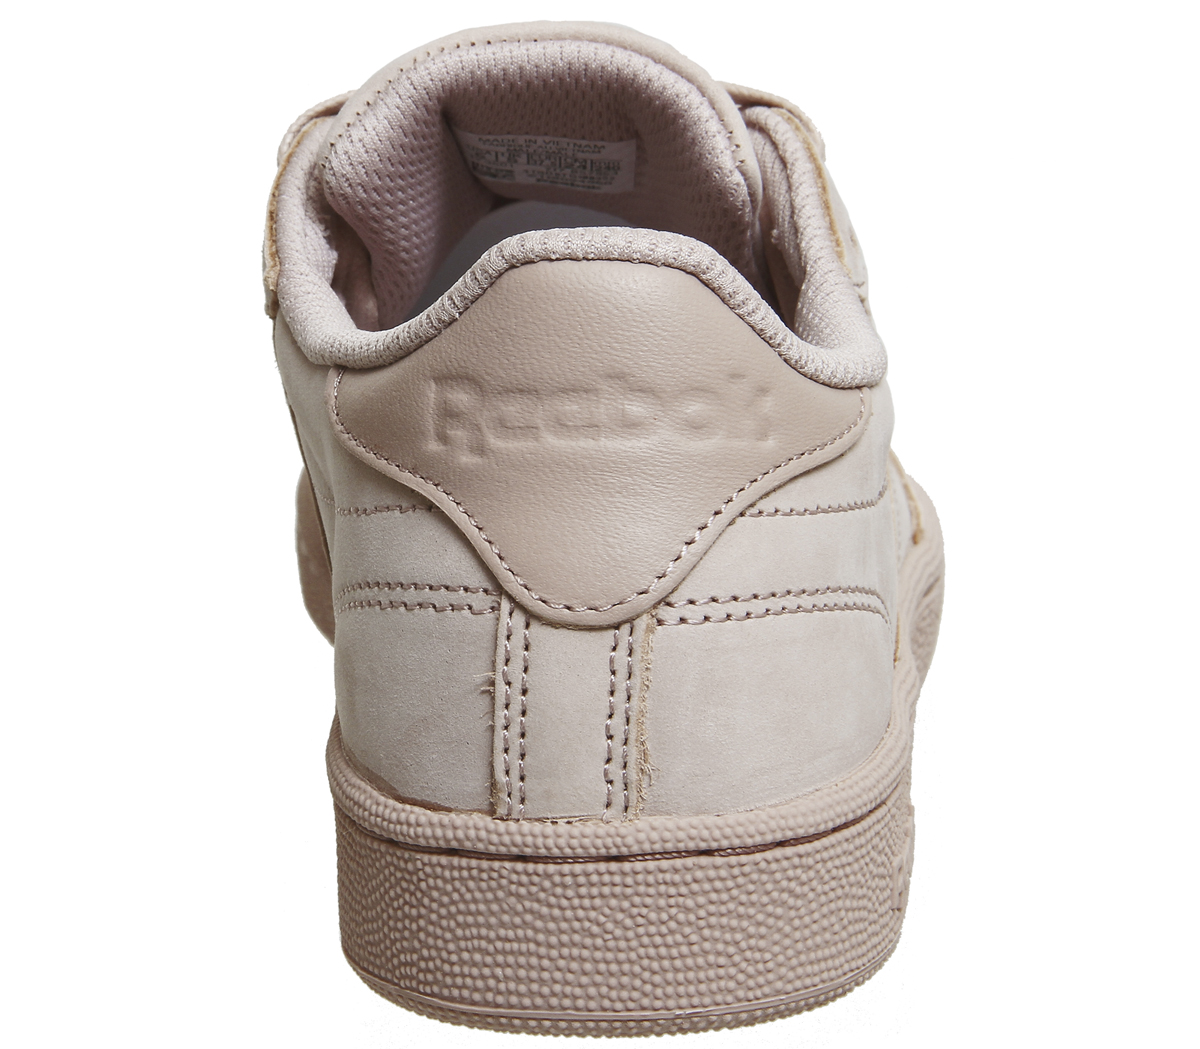 Sentinel Reebok Club C 85 Shell Pink Gold Trainers Shoes b30078d66